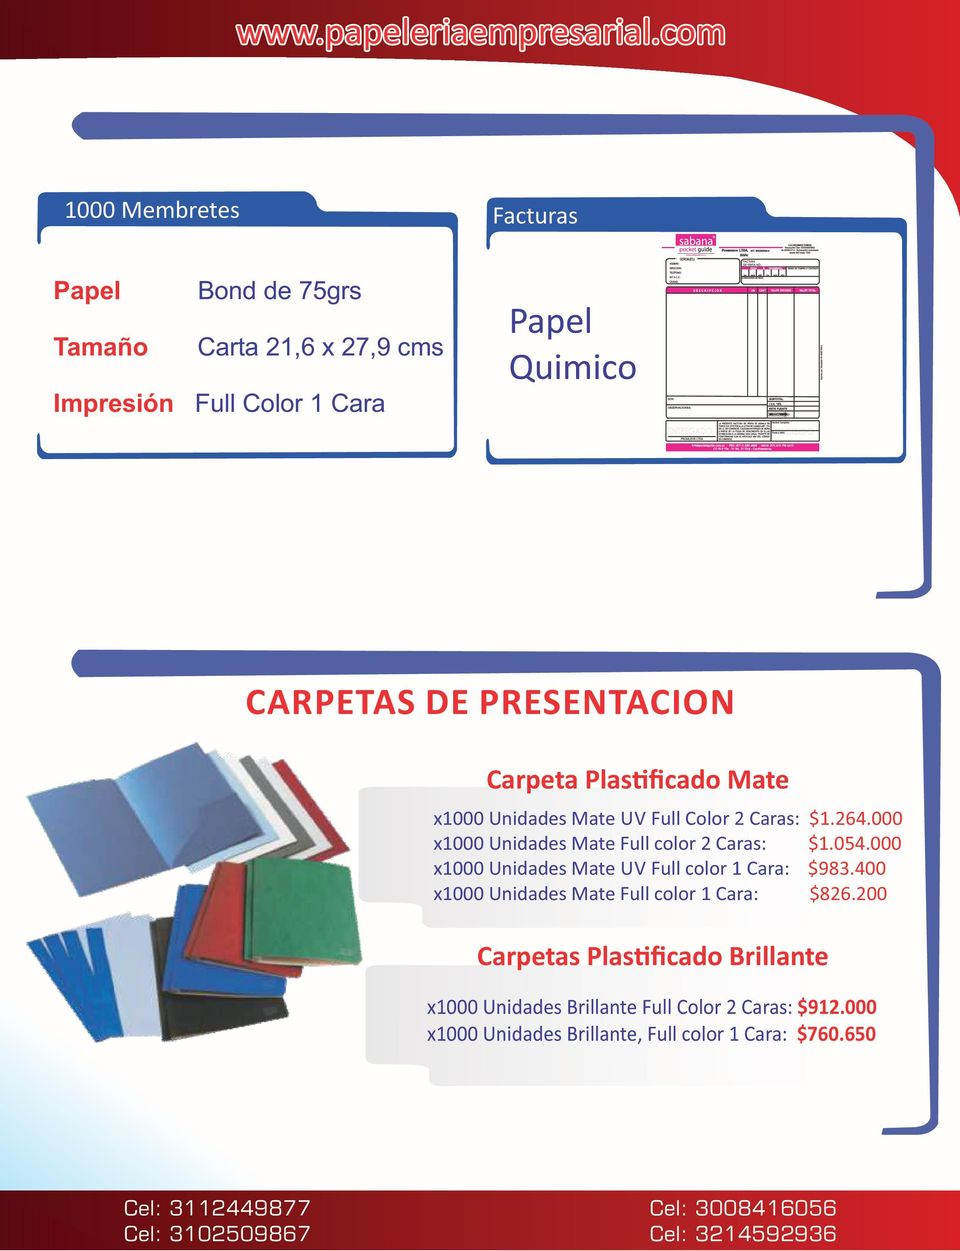 Carpeta Plas ficado Mate x1000 Unidades Mate UV Full Color 2 Caras: $1.264.000 x1000 Unidades Mate Full color 2 Caras: $1.054.